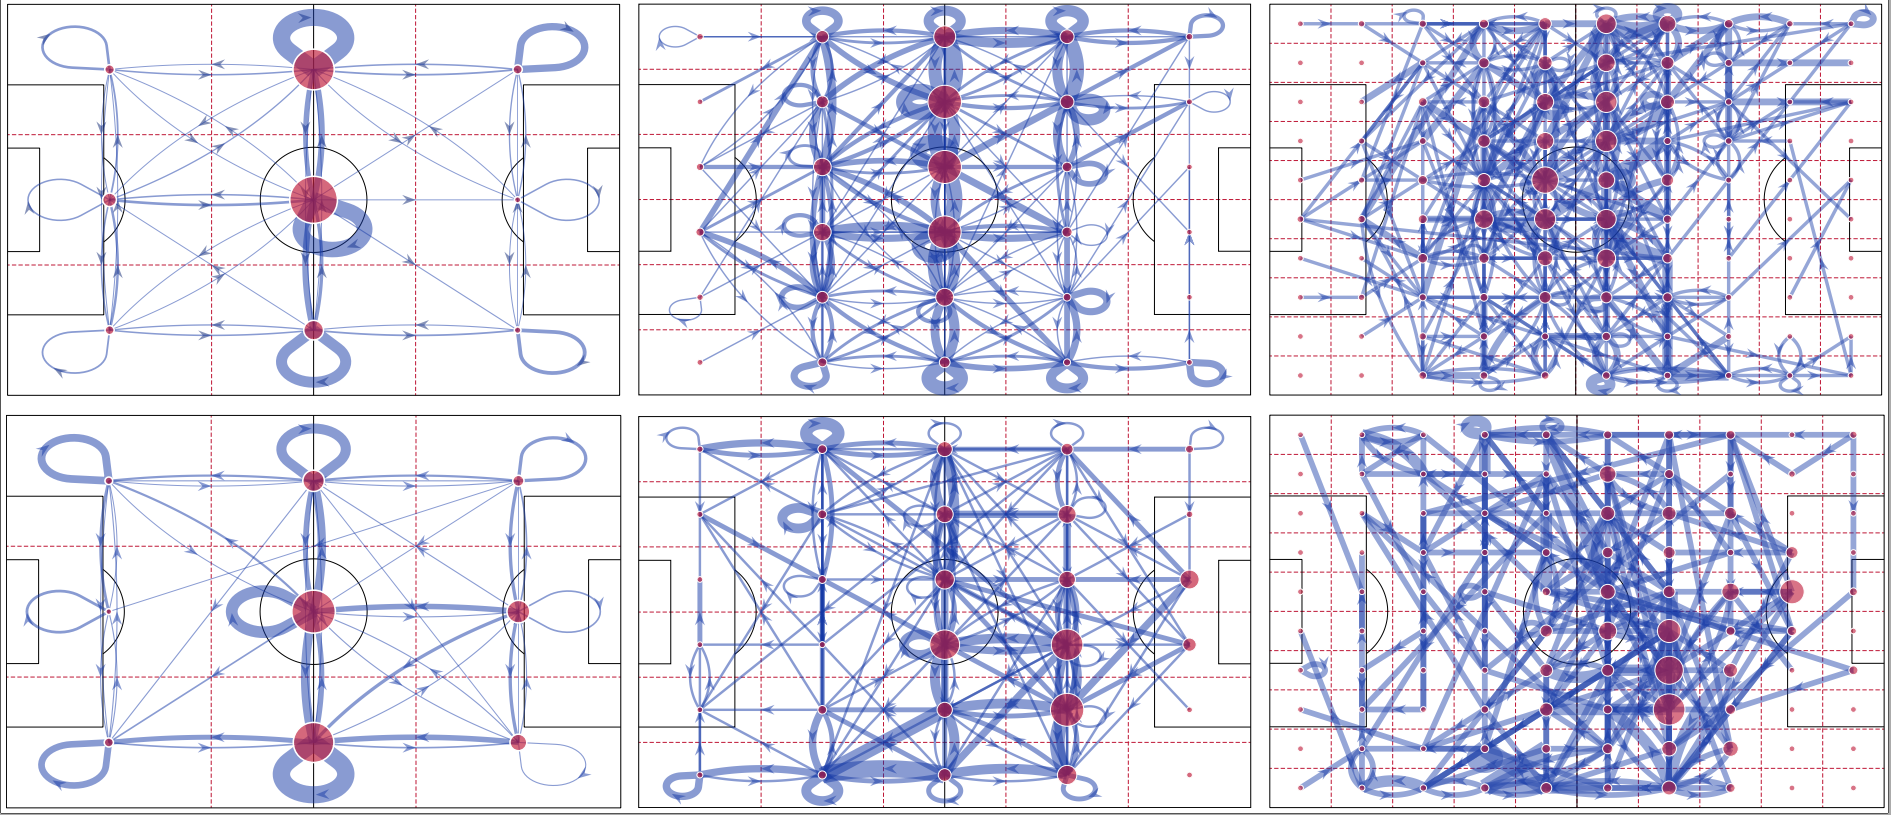 Pitch networks reveal organizational & spatial patterns of Guardiola's FC Barcelona (Published)